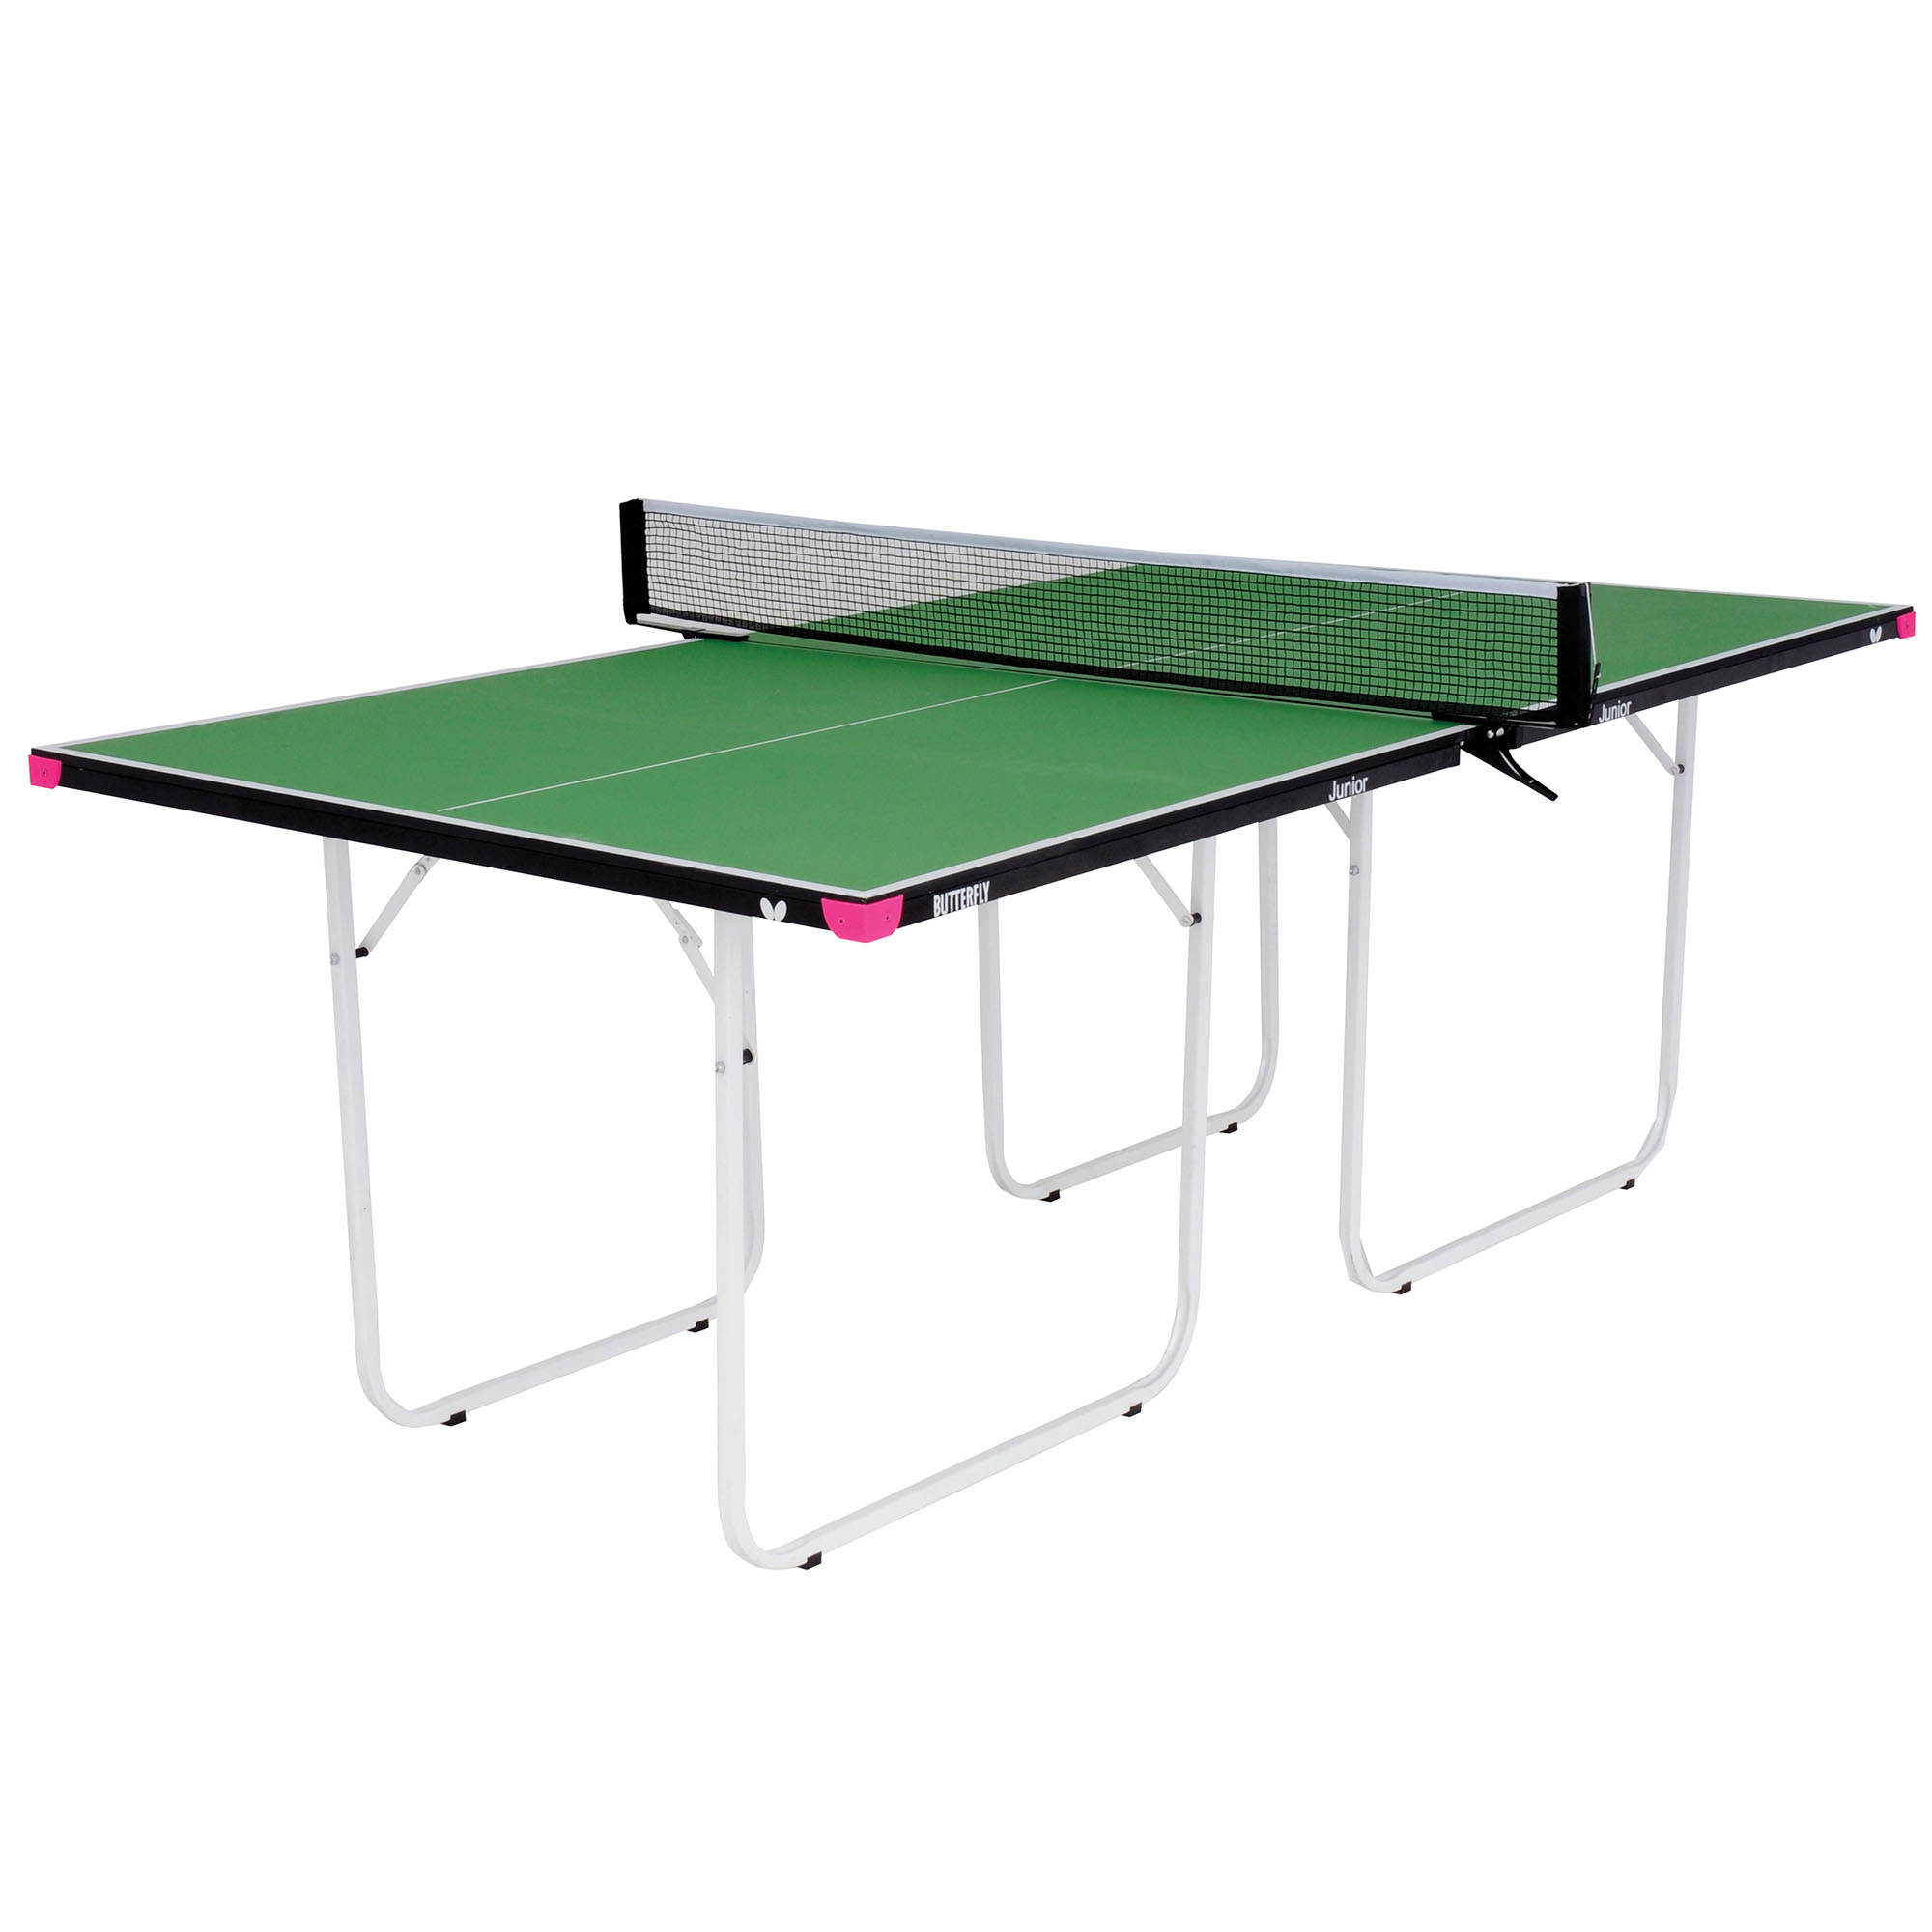 Butterfly Junior Indoor Table Tennis Table